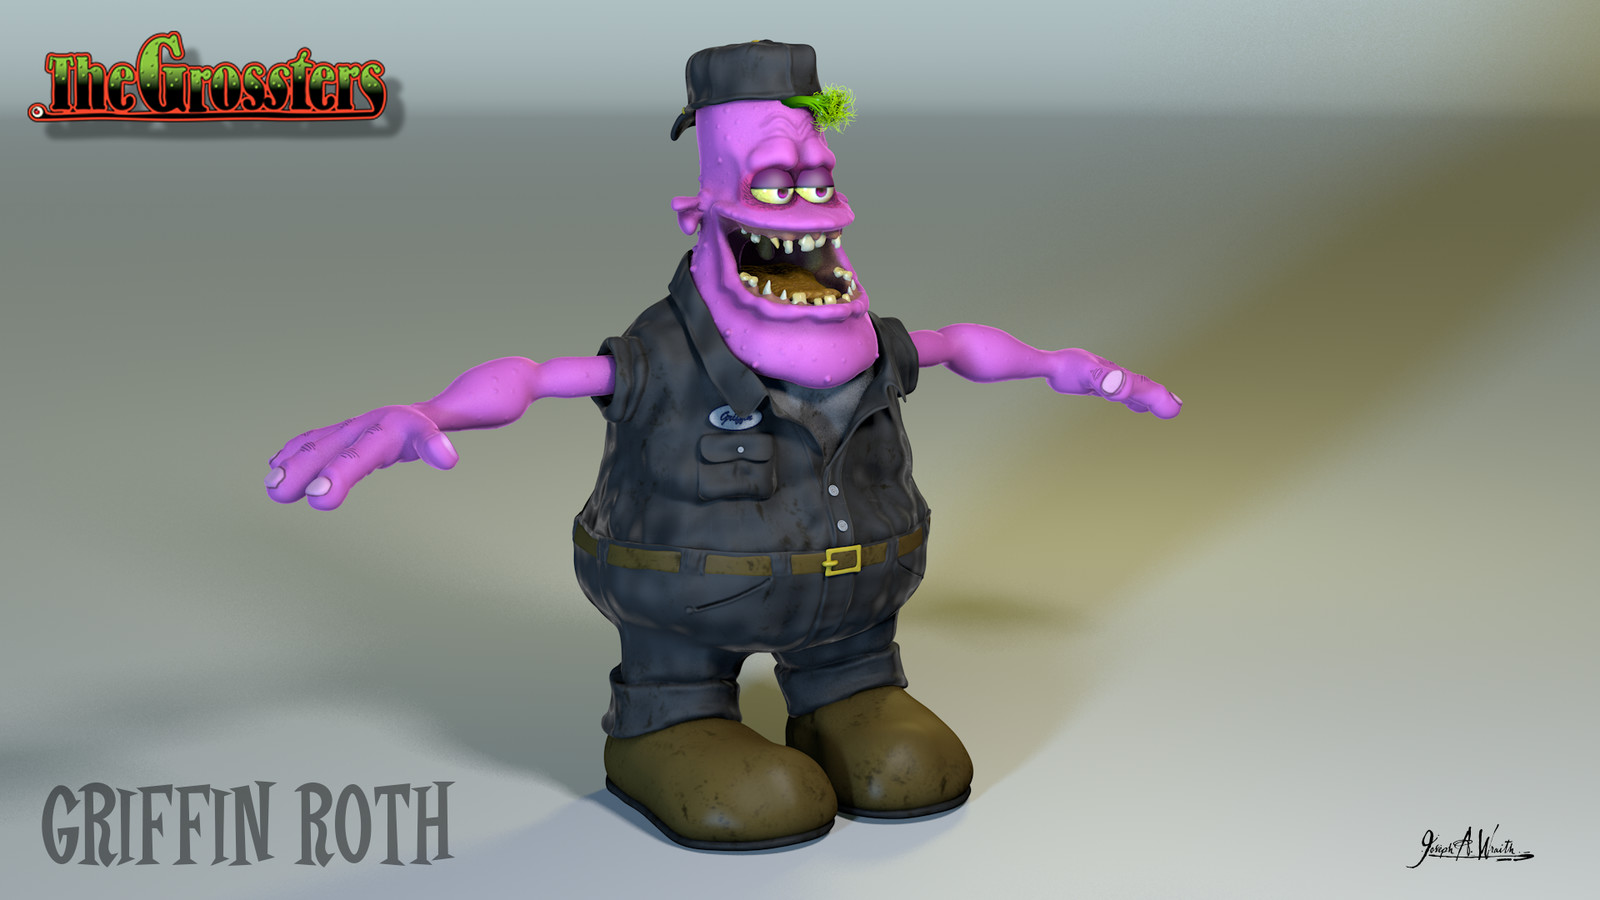 The Grossters - Character: Griffin Roth - 3d ©2016 Copyright, Joseph A. Wraith